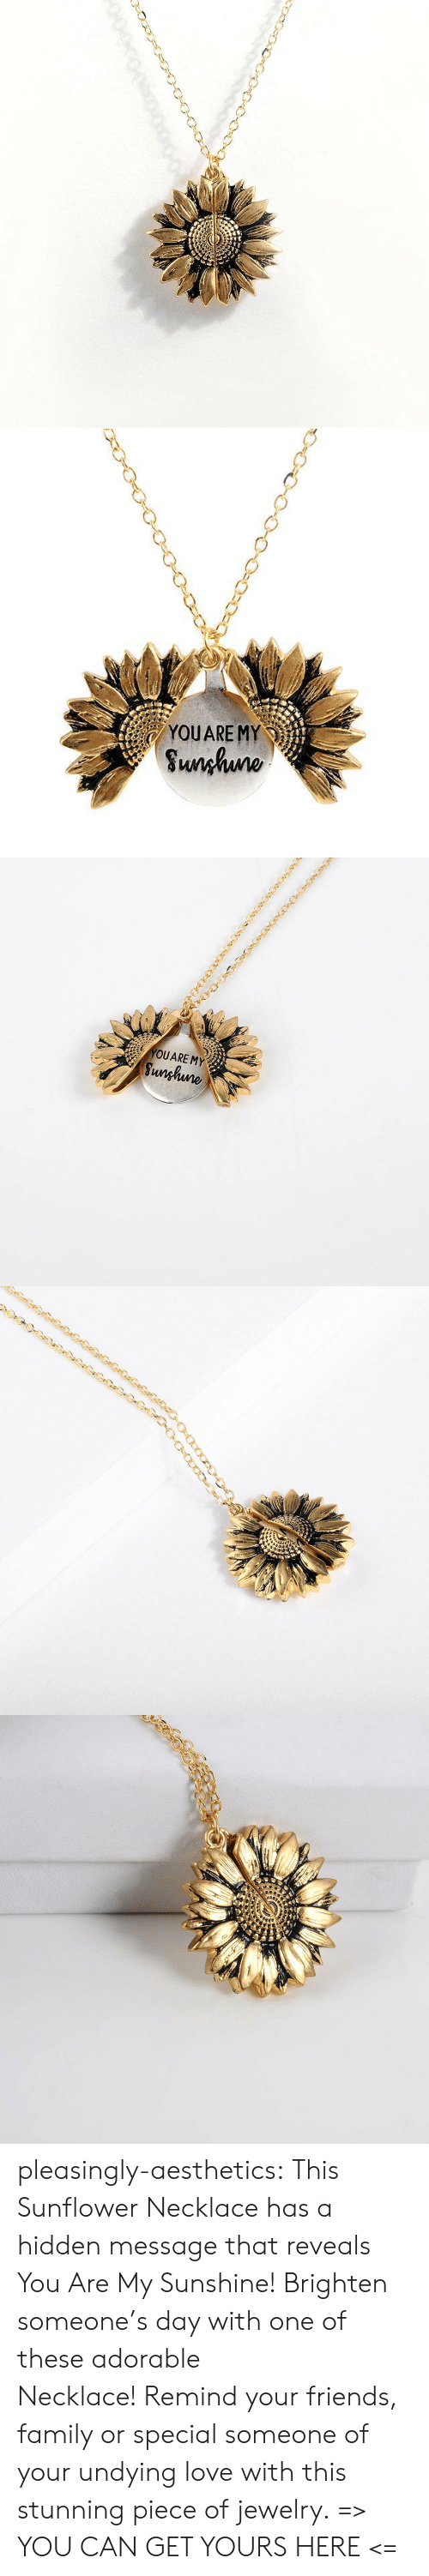 Family, Friends, and Love: YOUARE MY  Sunhuno   YOUARE MY  Sunghune pleasingly-aesthetics: This Sunflower Necklace has a hidden message that reveals You Are My Sunshine! Brighten someone's day with one of these adorable Necklace! Remind your friends, family or special someone of your undying love with this stunning piece of jewelry. => YOU CAN GET YOURS HERE <=